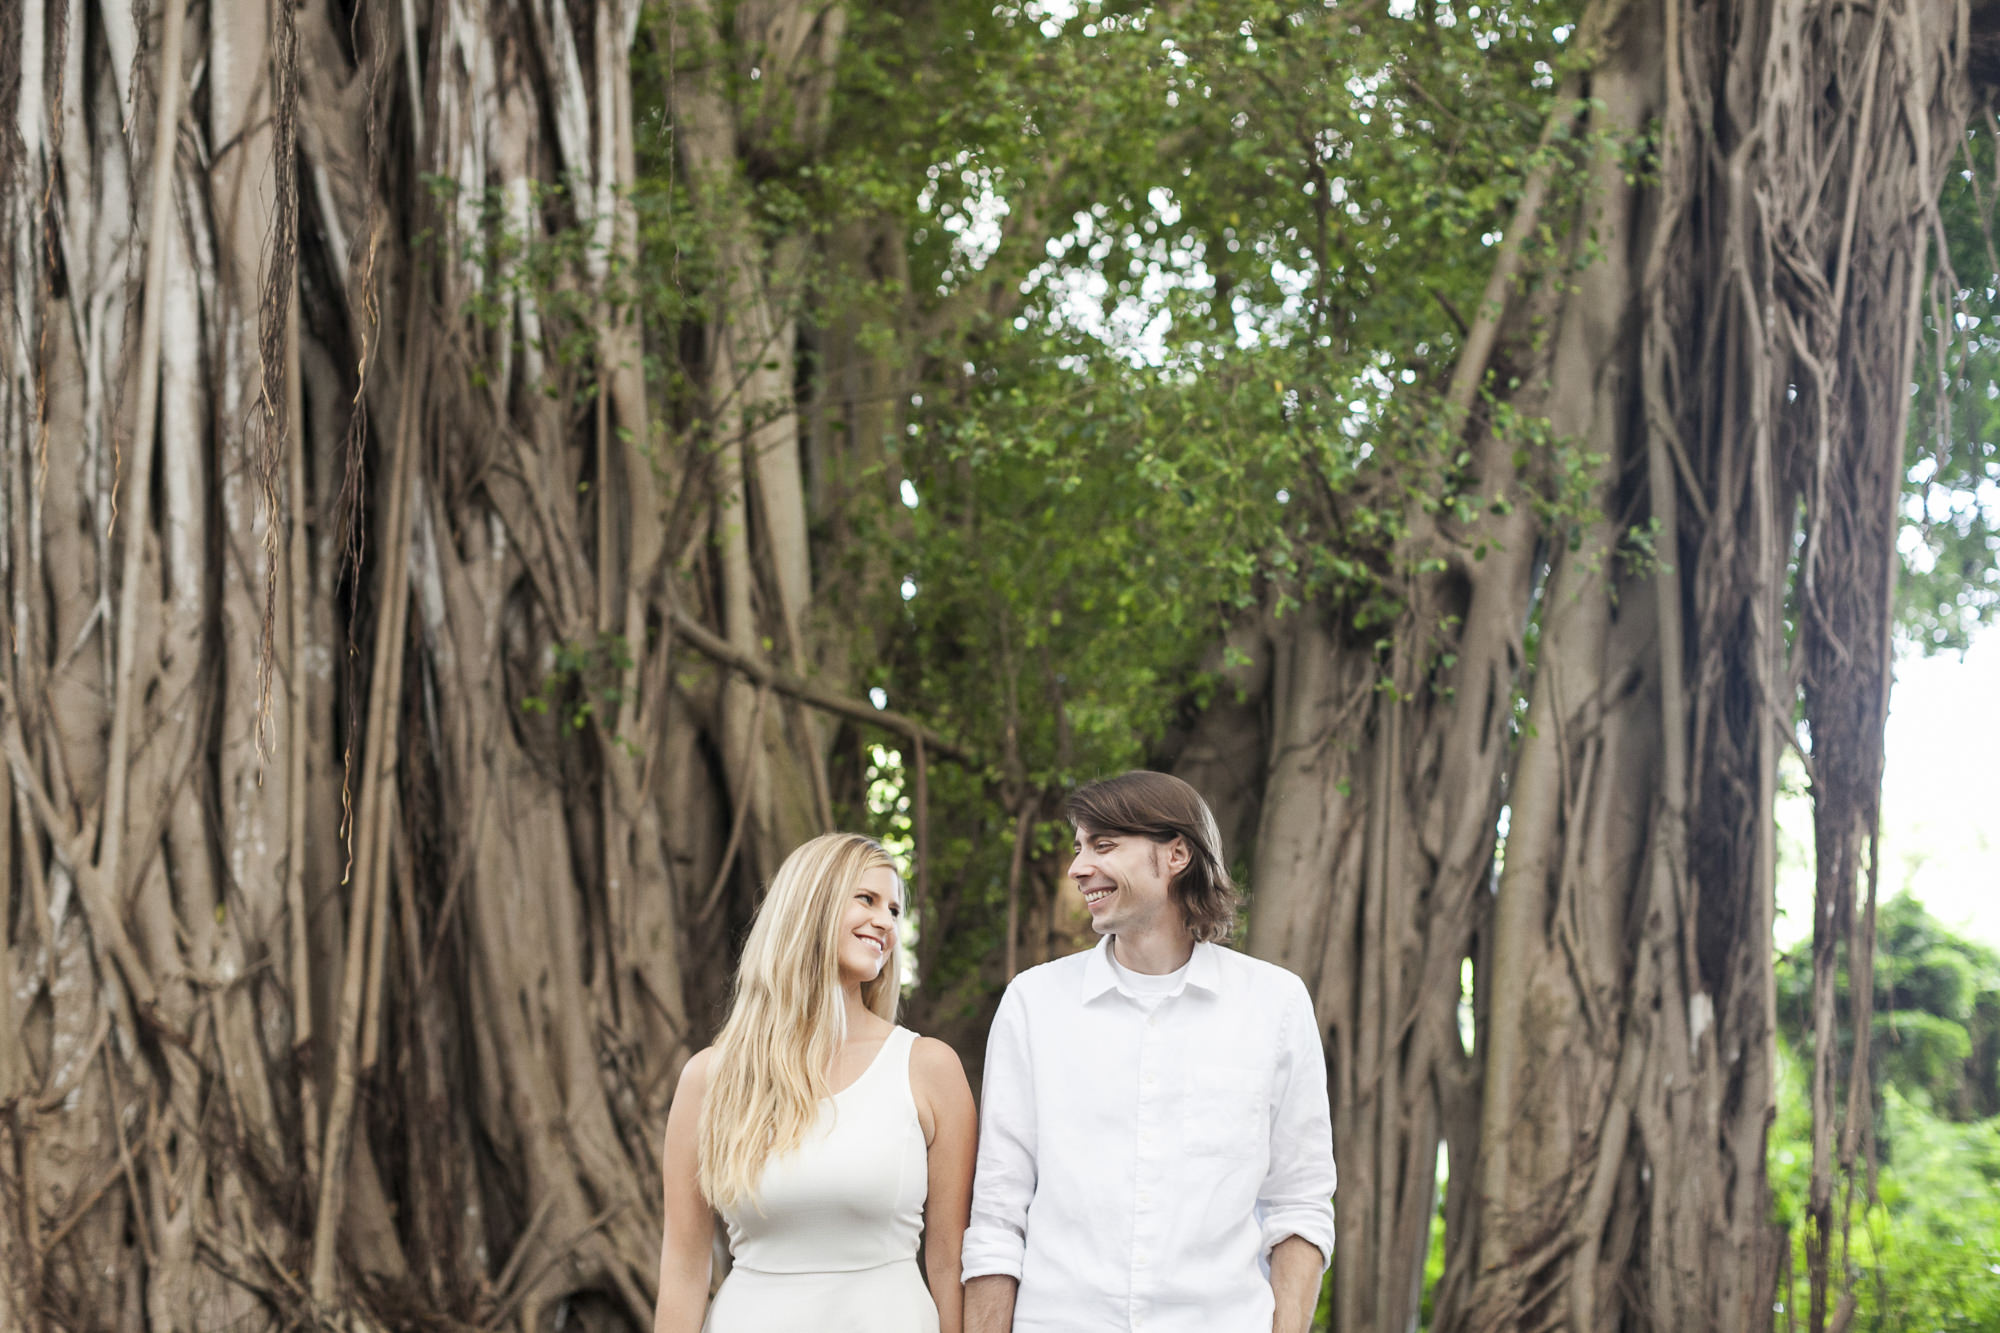 Engagement session in rain forest in Kauai